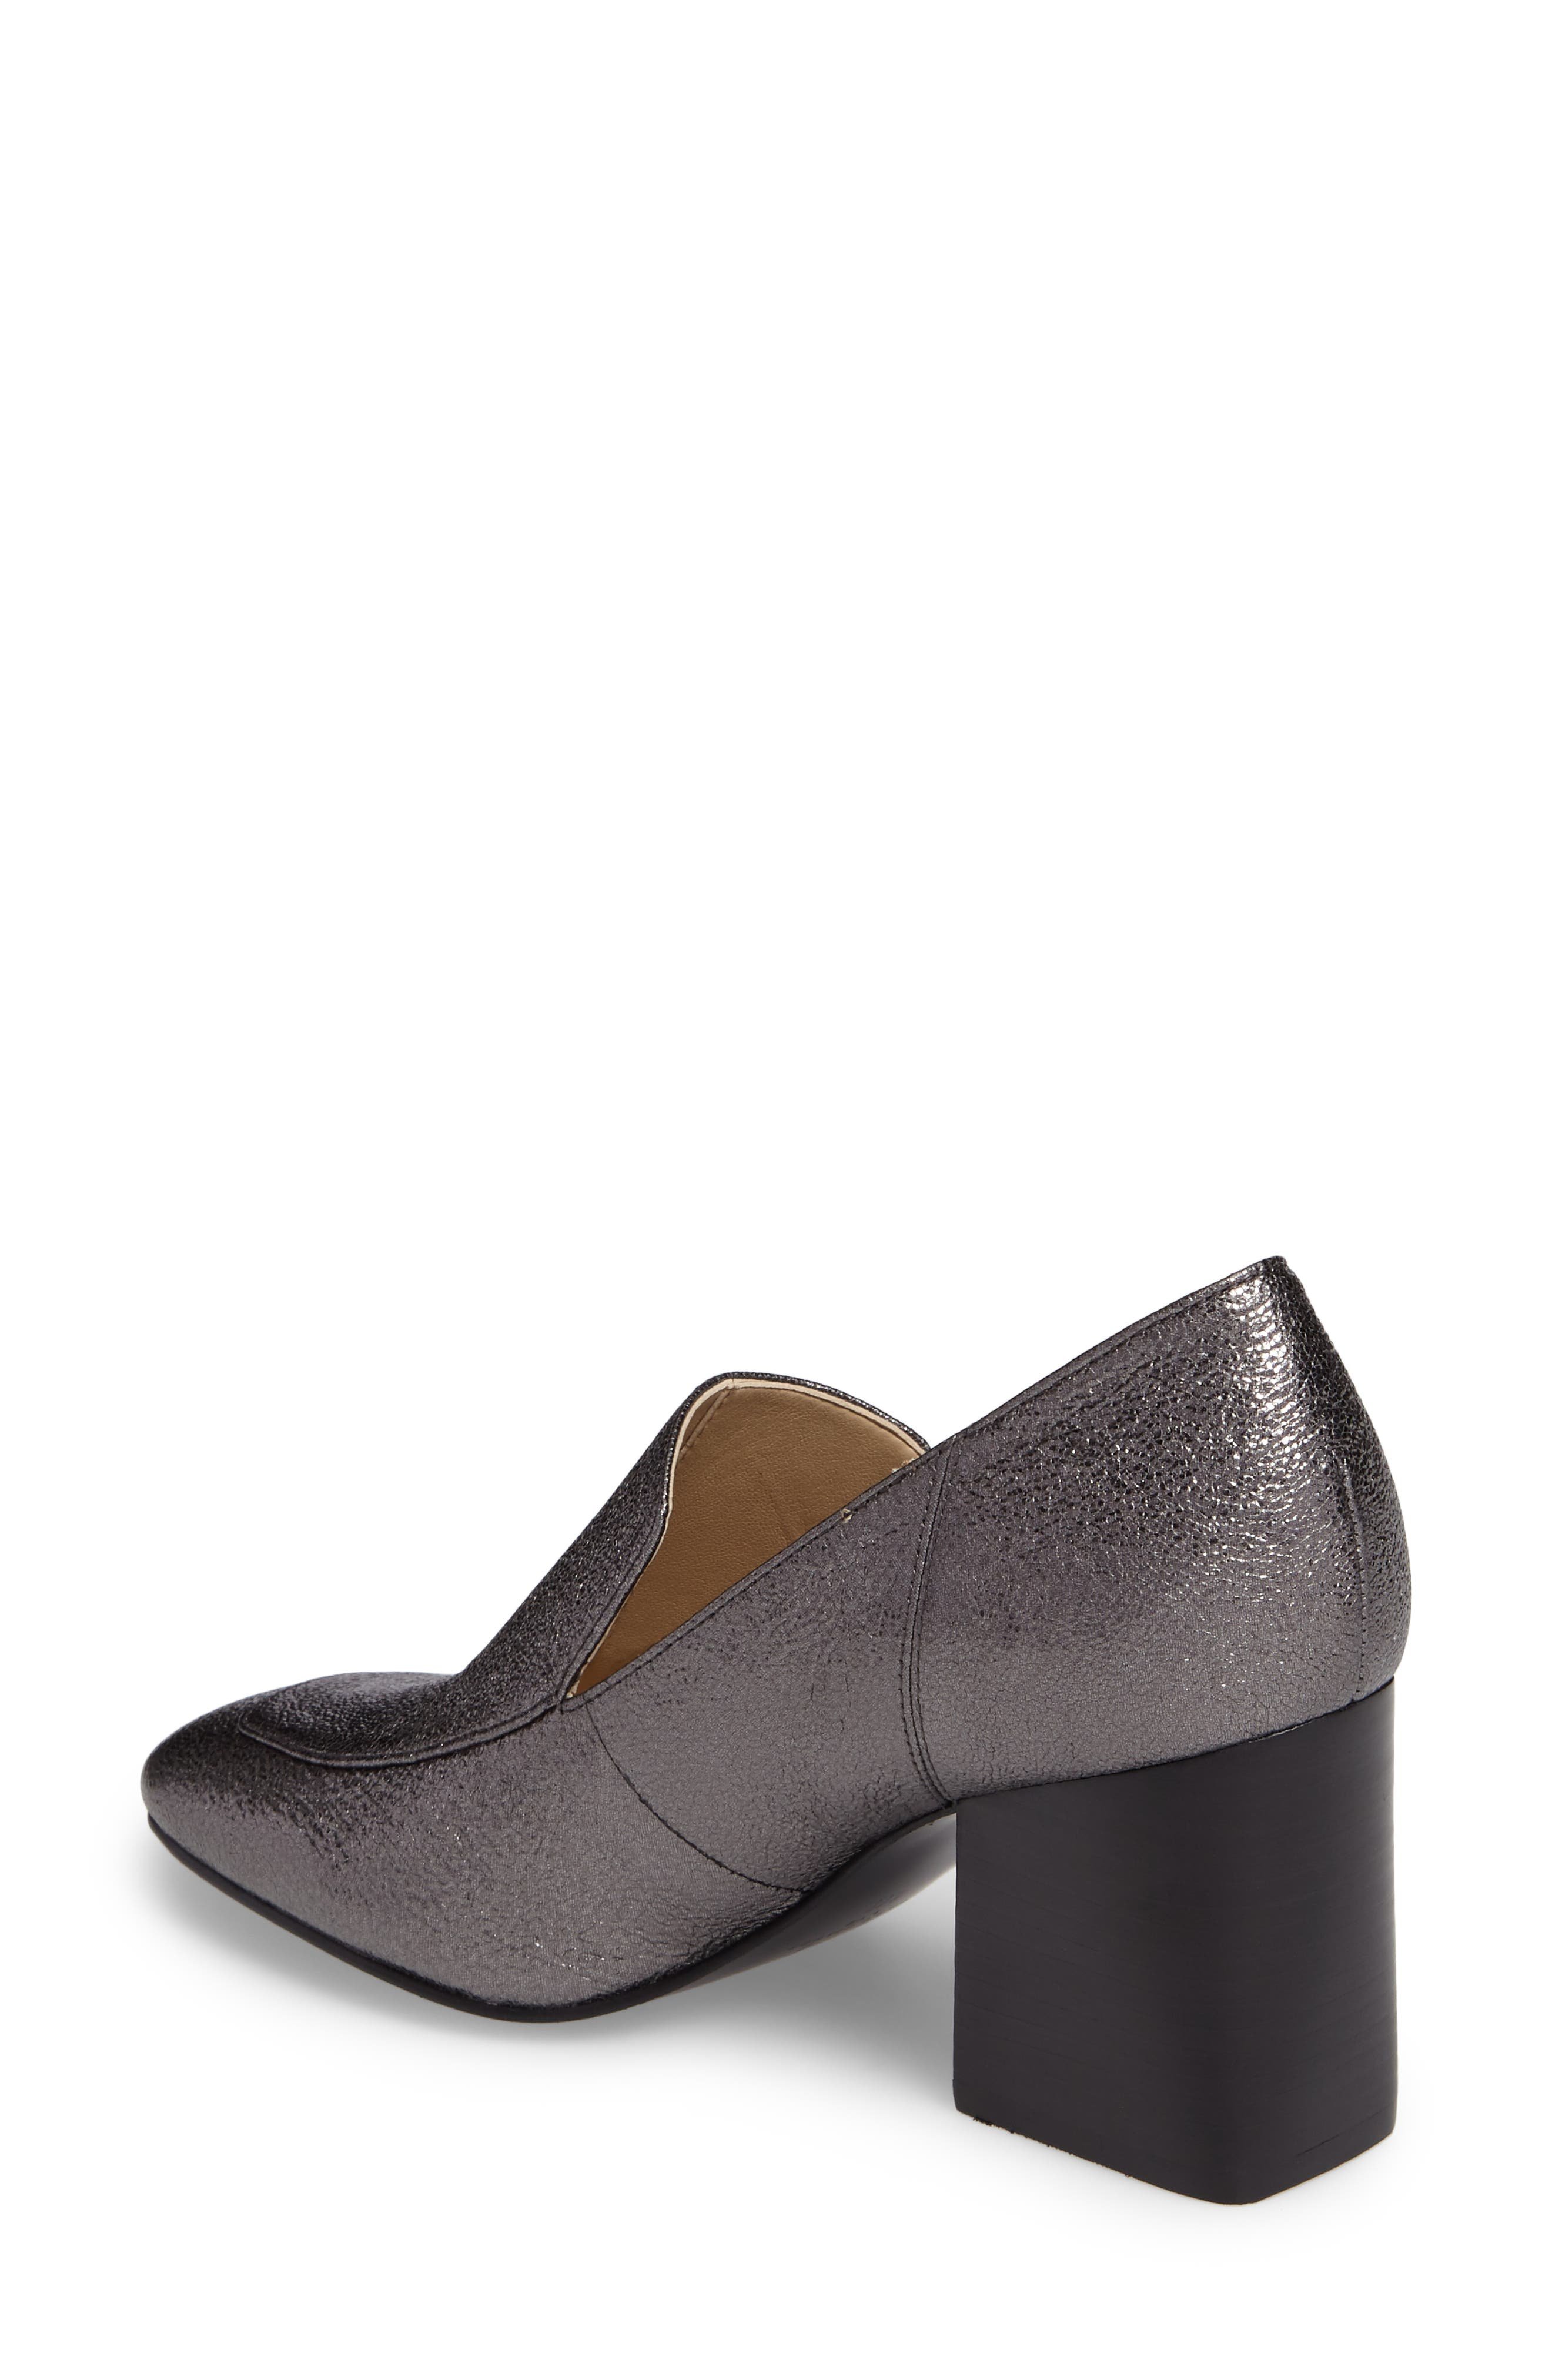 Marlo Loafer Pump,                             Alternate thumbnail 9, color,